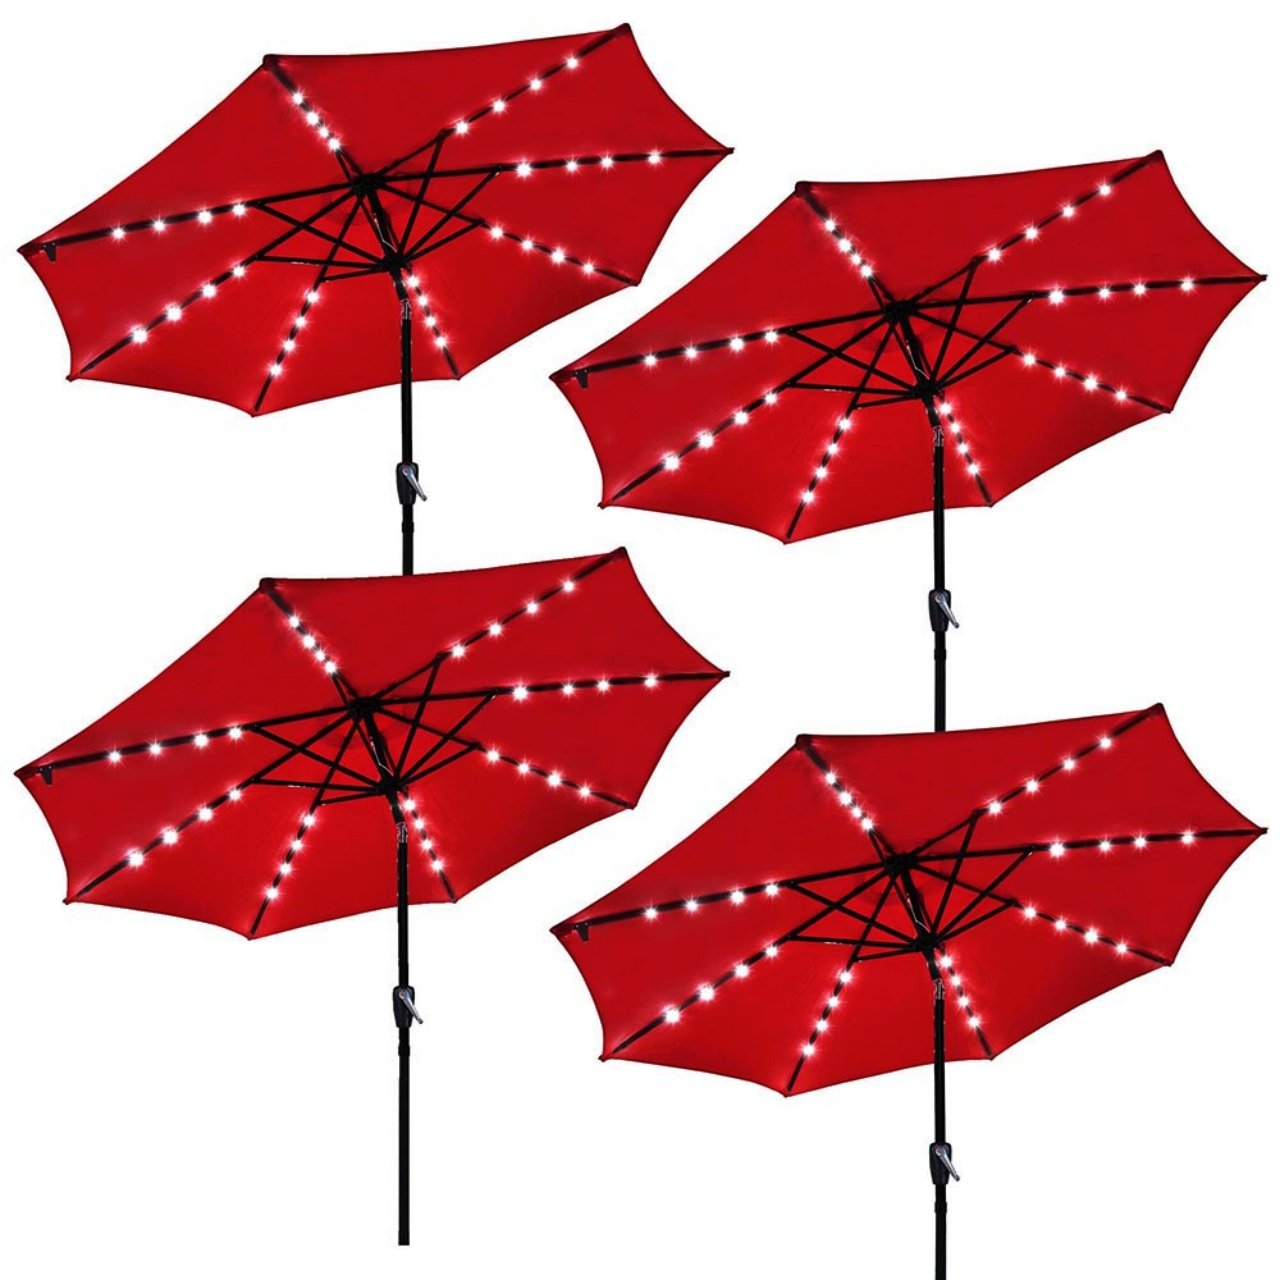 9ft Outdoor Patio Solar Power LED Aluminium Umbrella Sunshade UV Blocking Hand-Crank Tilt - Set of 4 Red #915